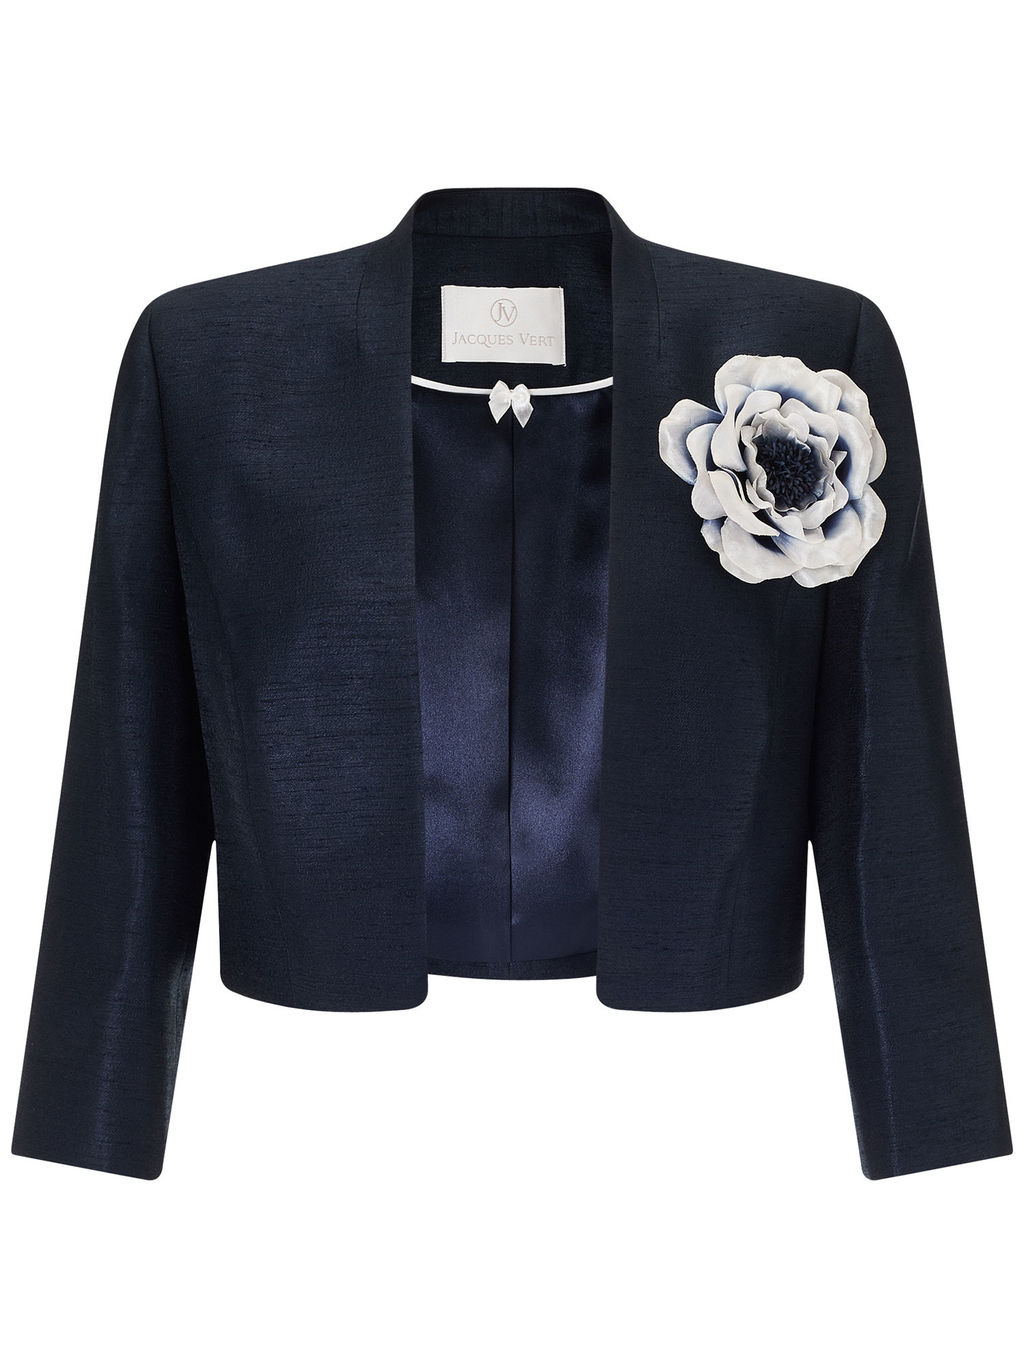 Stand Collar Bolero - pattern: plain; style: bolero/shrug; collar: round collar/collarless; secondary colour: white; predominant colour: navy; fit: tailored/fitted; fibres: polyester/polyamide - 100%; occasions: occasion; sleeve length: 3/4 length; sleeve style: standard; texture group: structured shiny - satin/tafetta/silk etc.; collar break: low/open; pattern type: fabric; embellishment: corsage; length: cropped; season: a/w 2015; wardrobe: event